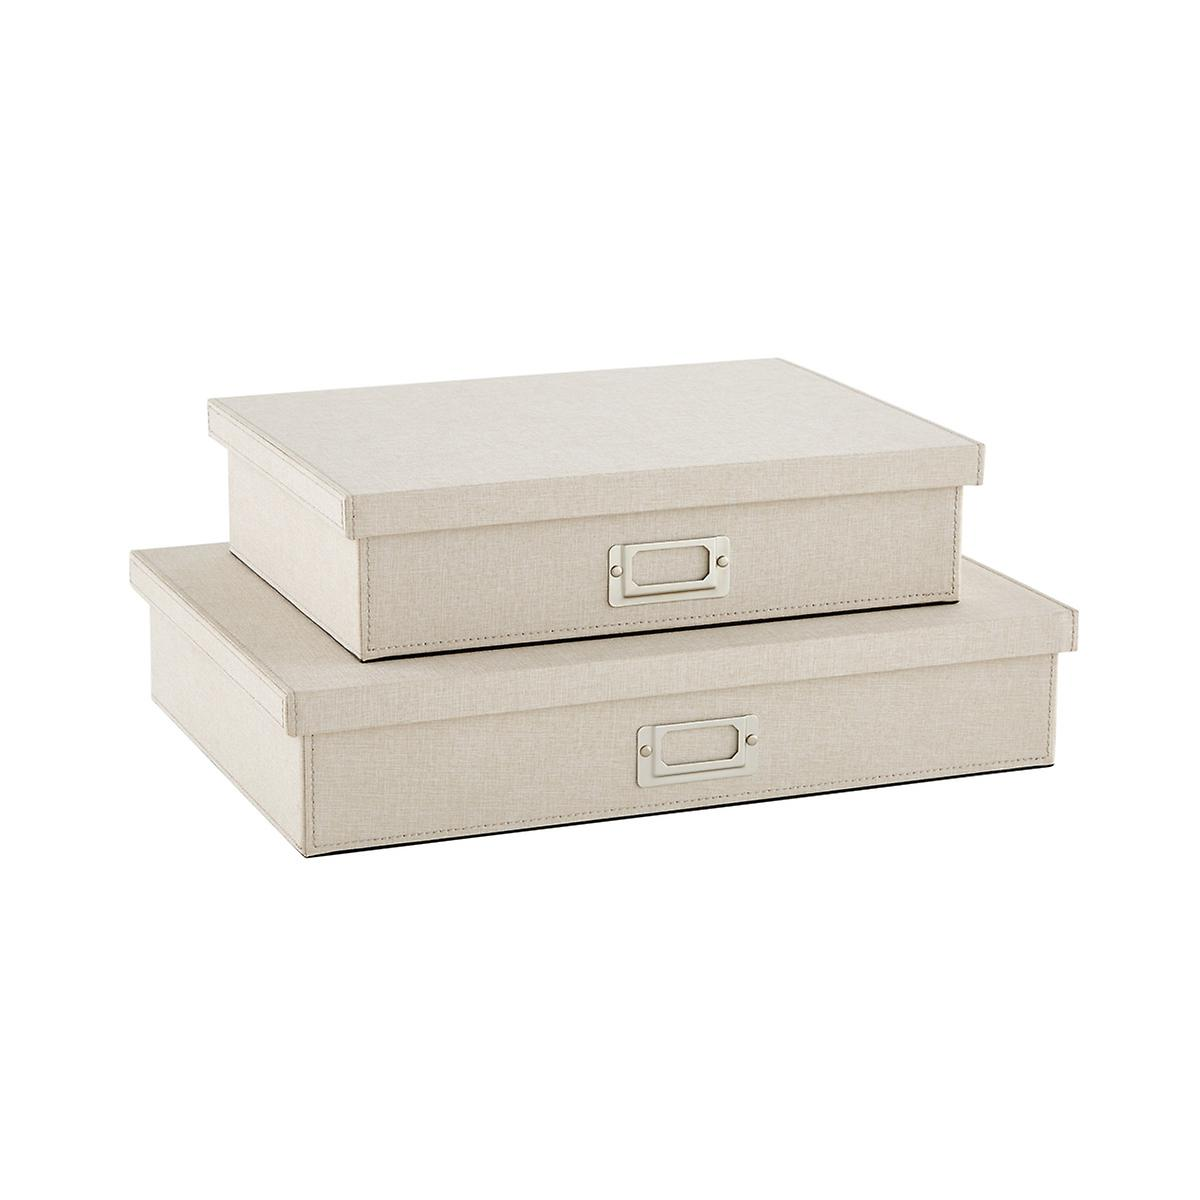 Bristol Linen Flax Office Storage Boxes